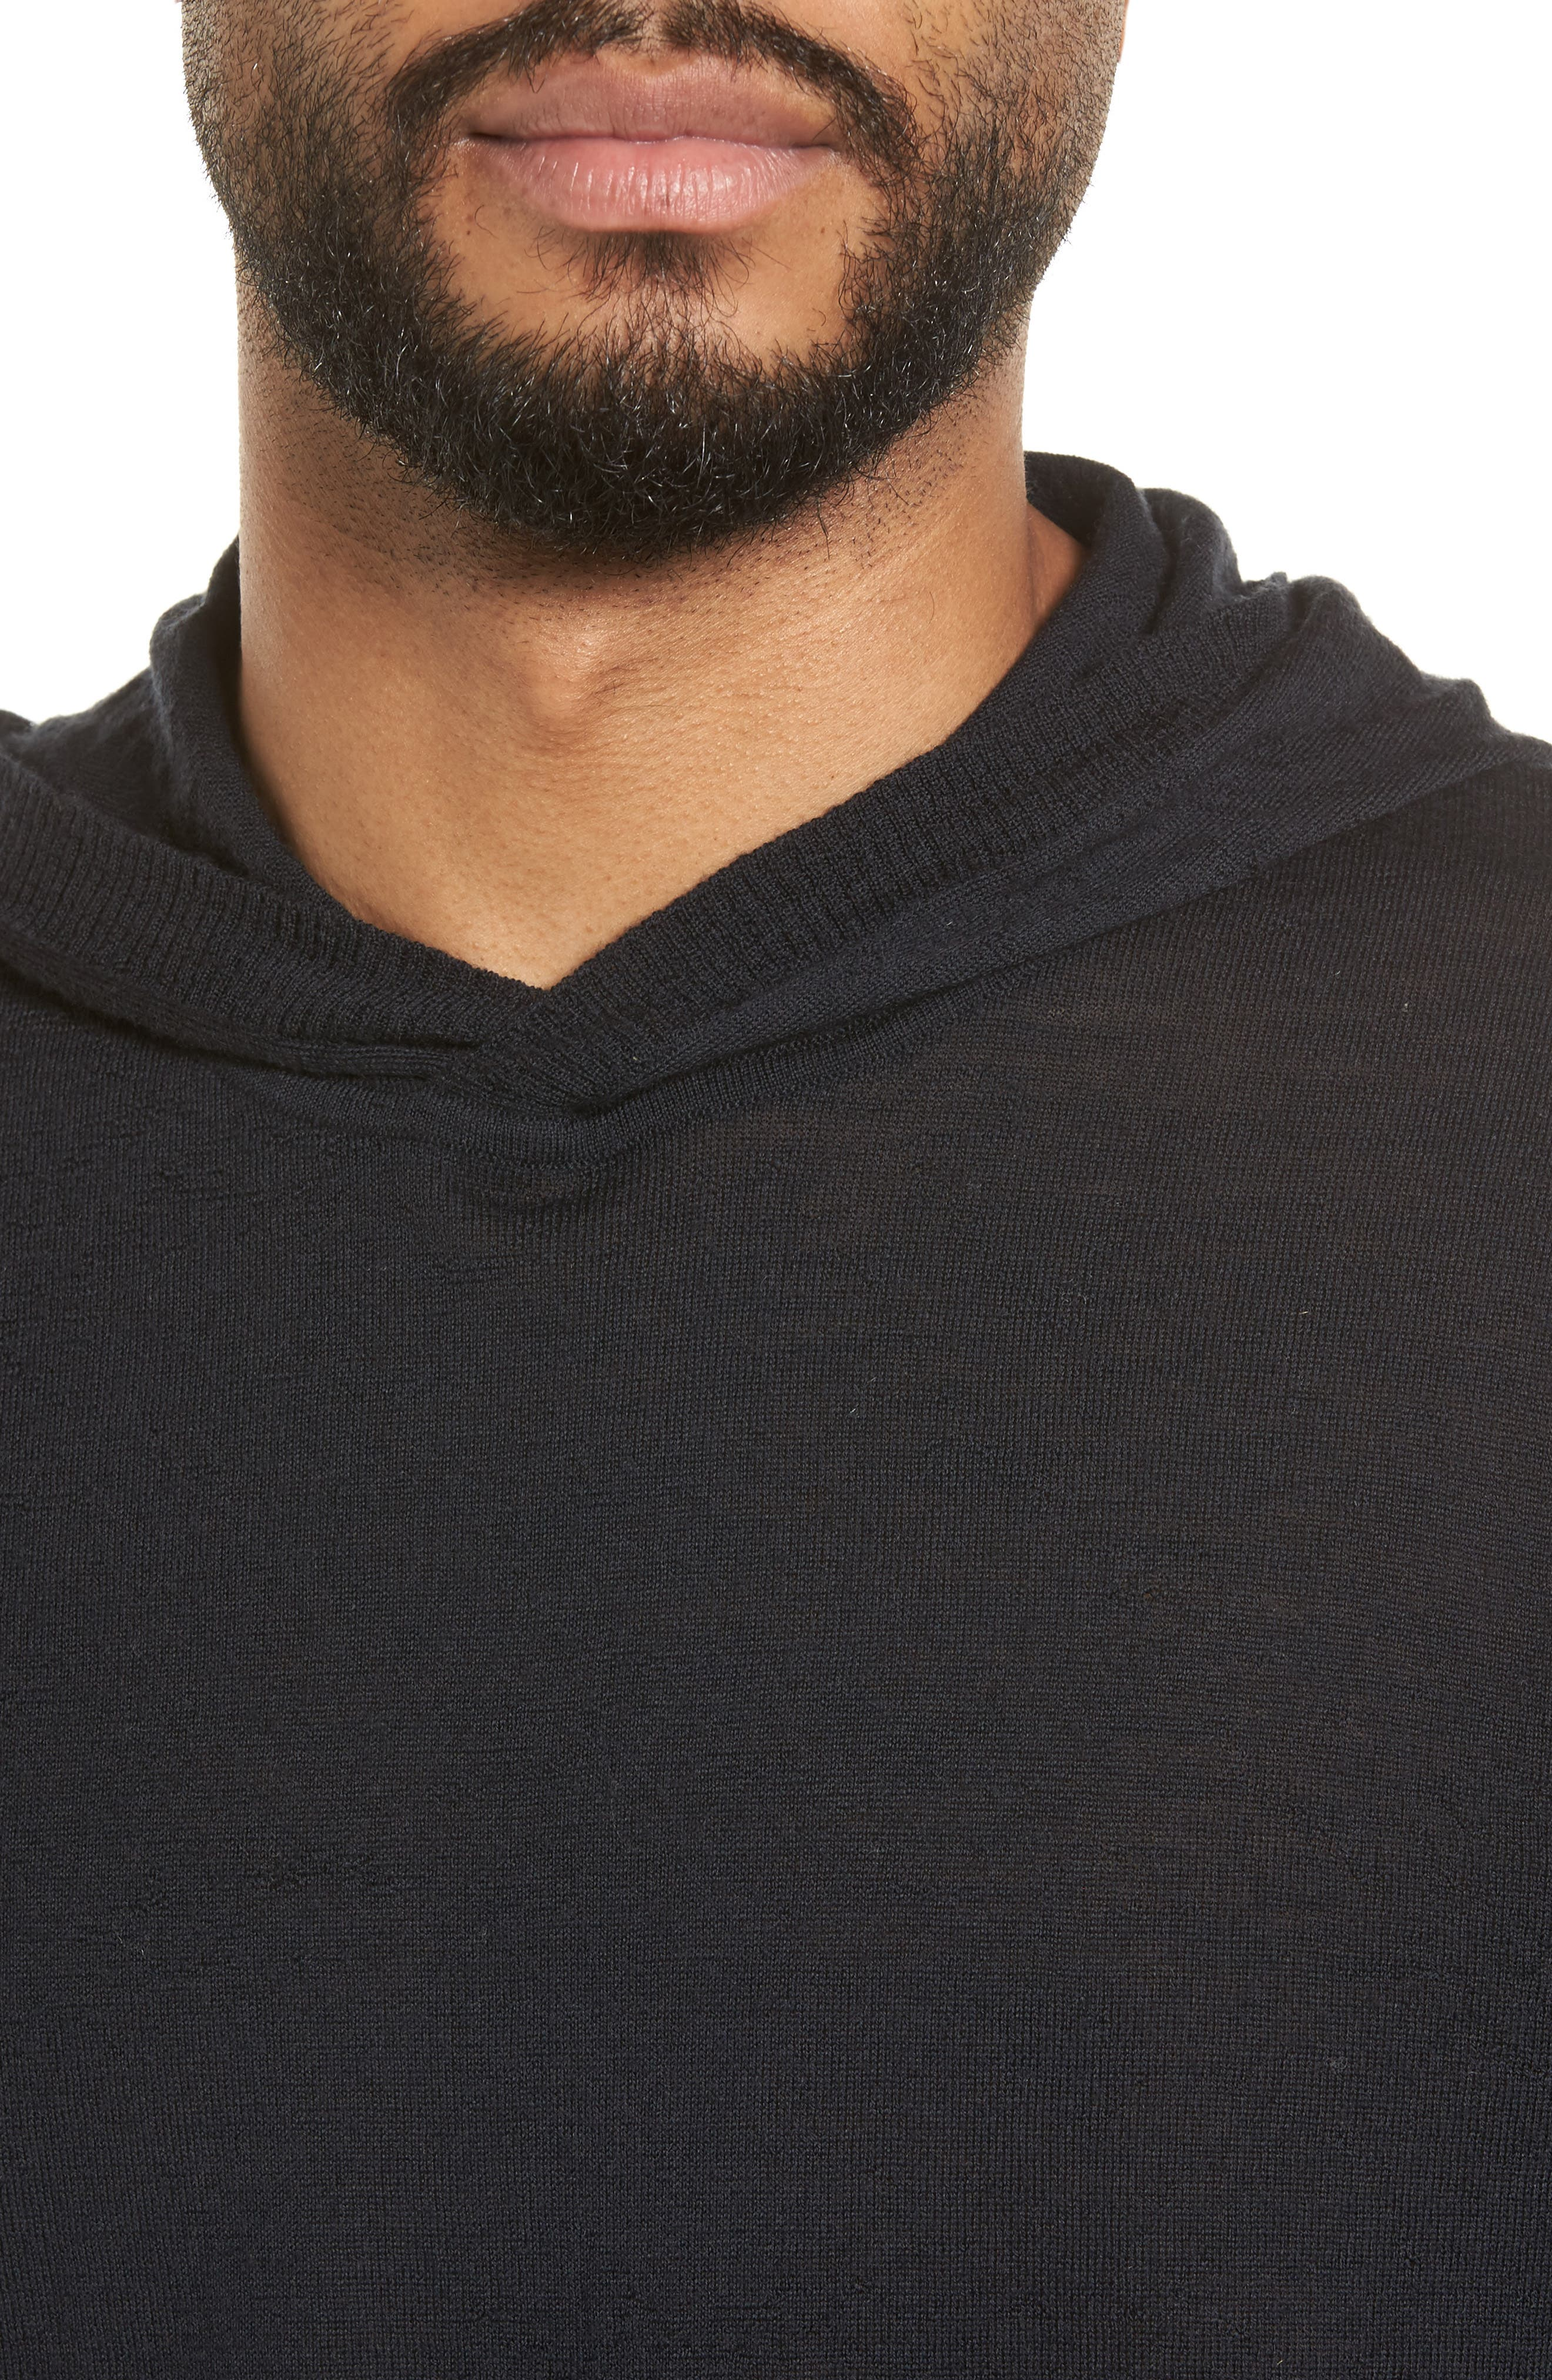 Regular Fit Wool Pullover Hoodie,                             Alternate thumbnail 4, color,                             Black